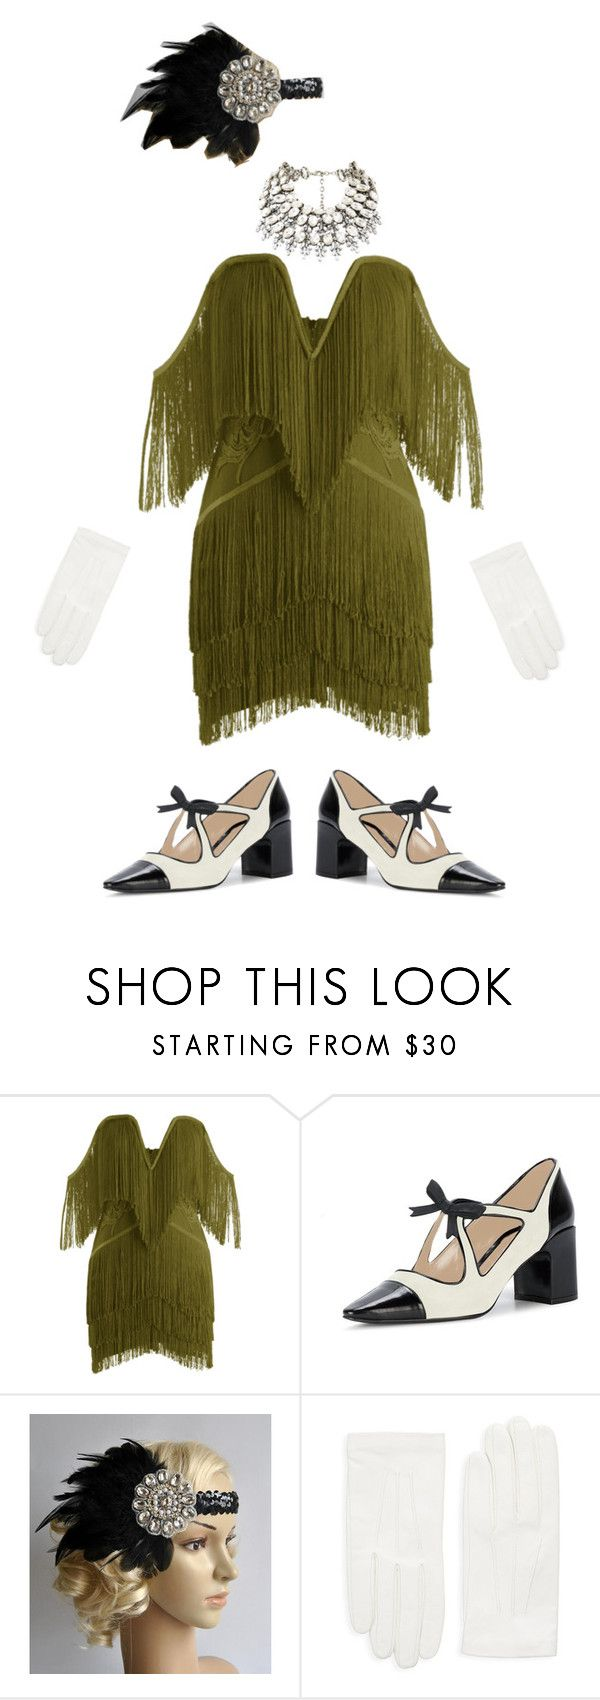 """""""Frilly Flapper Girl"""" by justdanceinspo ❤ liked on Polyvore featuring RED Valentino and vintage"""